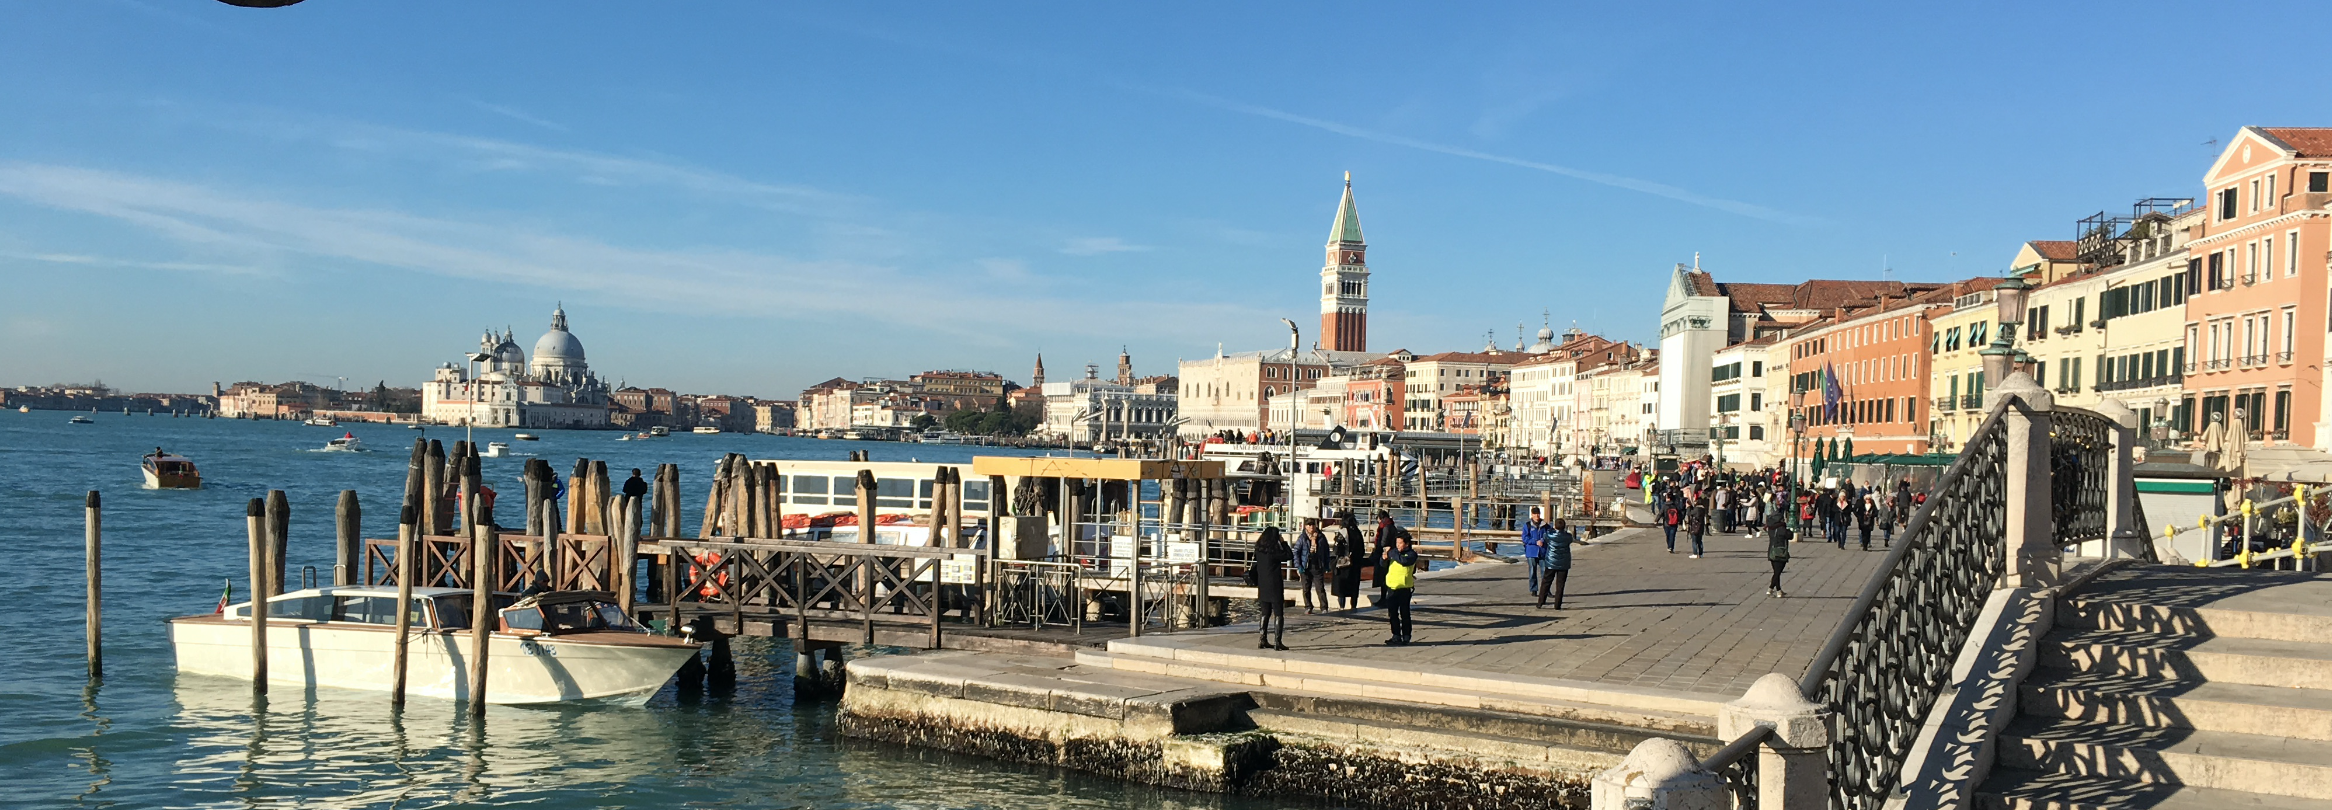 What we will see on the Vivaldi in Venice tours 2019